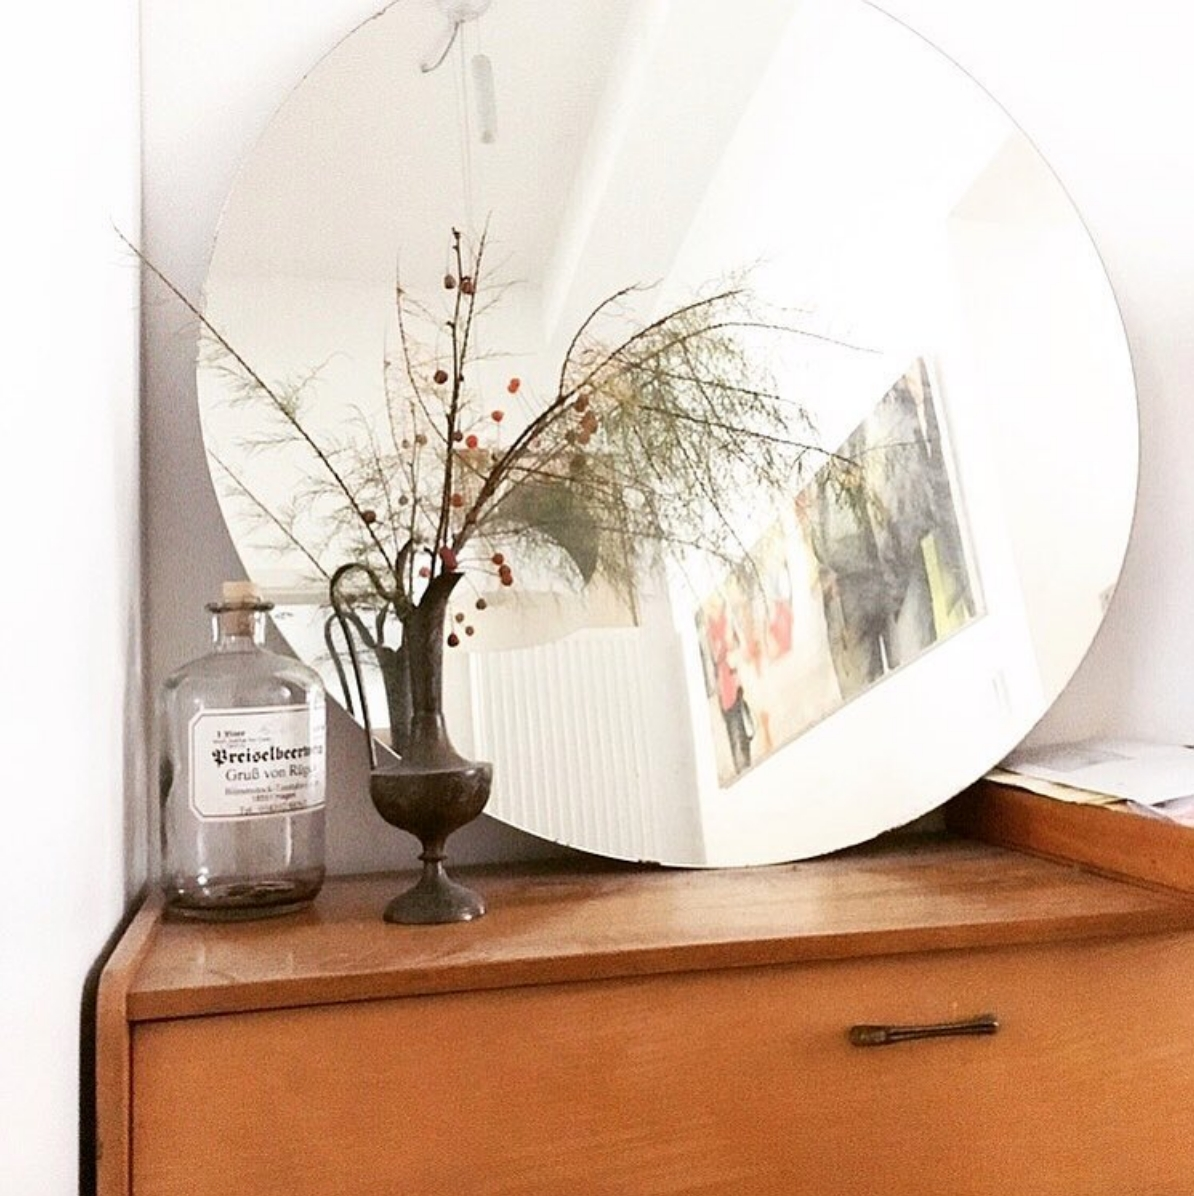 Grandpa's beautiful furniture ... #plants #plantlover #möbel #vintage #midcentury #einrichtung #küche #esszimmer